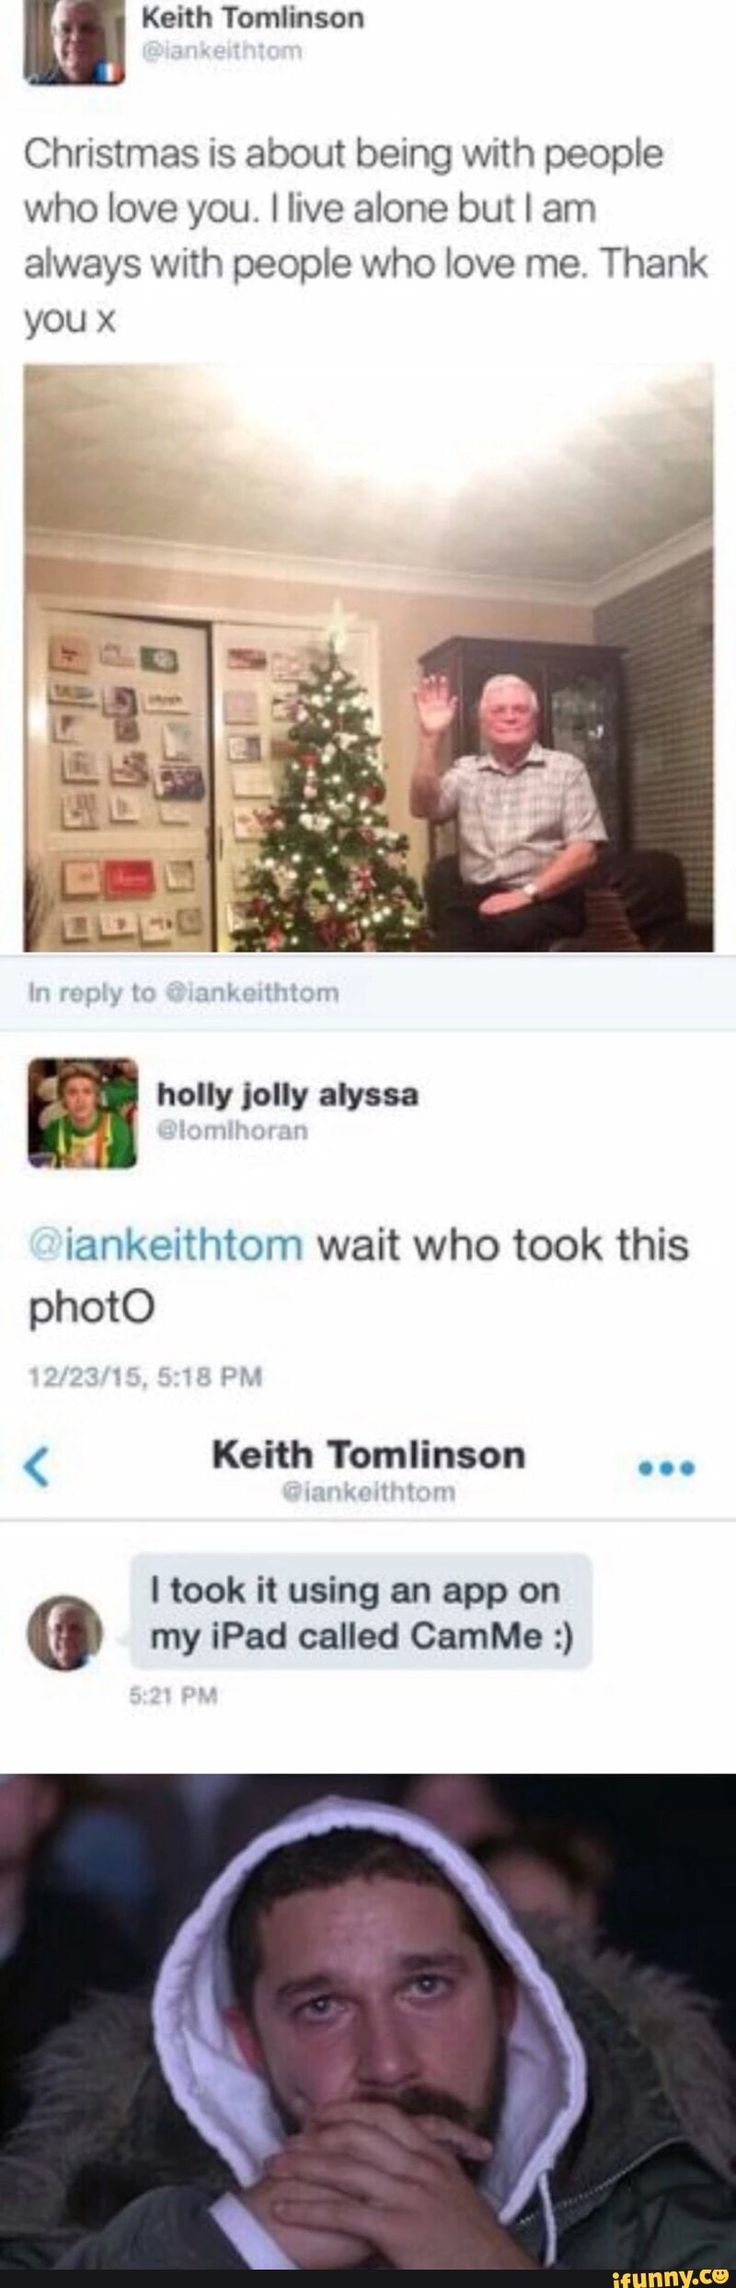 The best parts of this whole thing is that the guys last name is Tomlinson and the person who asked him the question has Niall Horan as their profile pic.